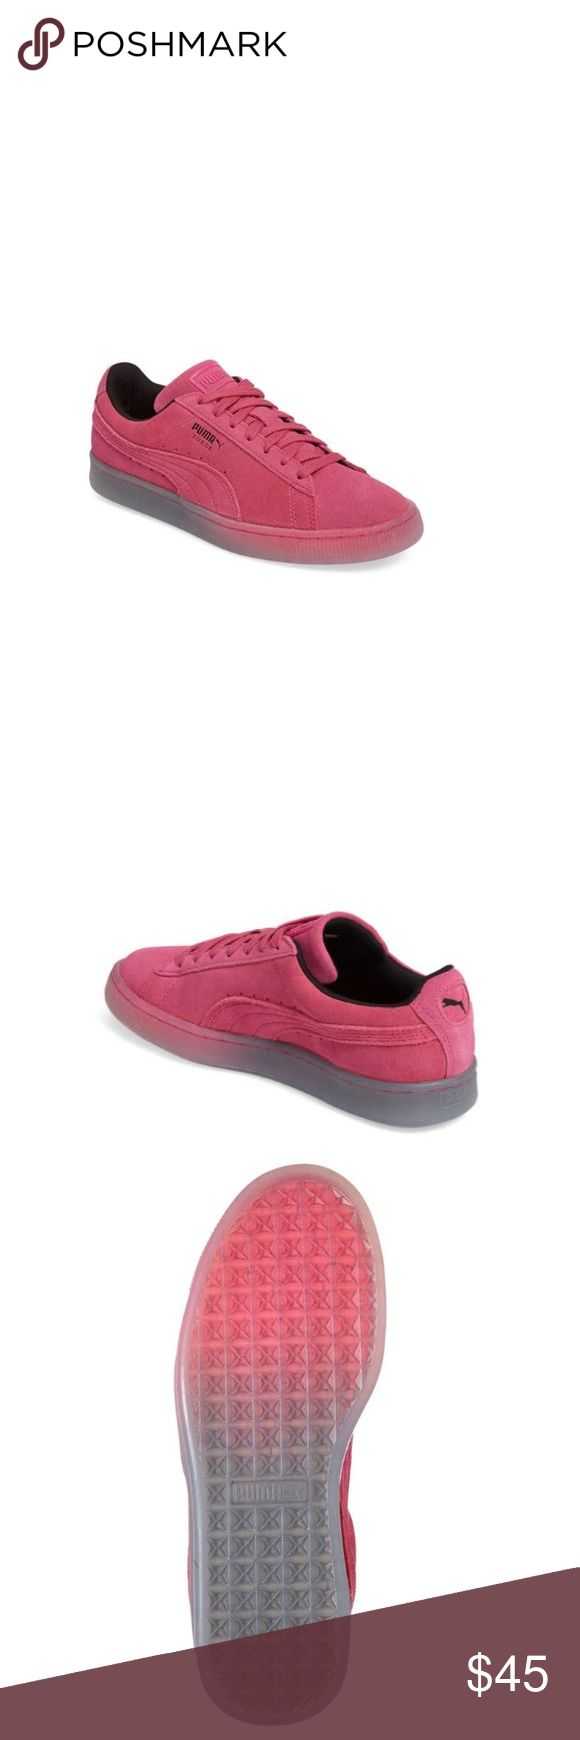 NEW ARRIVAL 💗Big kid sizes leather authentic Puma Great leather, durable and beautiful sneaker. See sizing conversion chart for girls to women's: 4.5 -36 (6); 5-37 (7); 6- 38 (8). No trades. Puma Shoes Sneakers